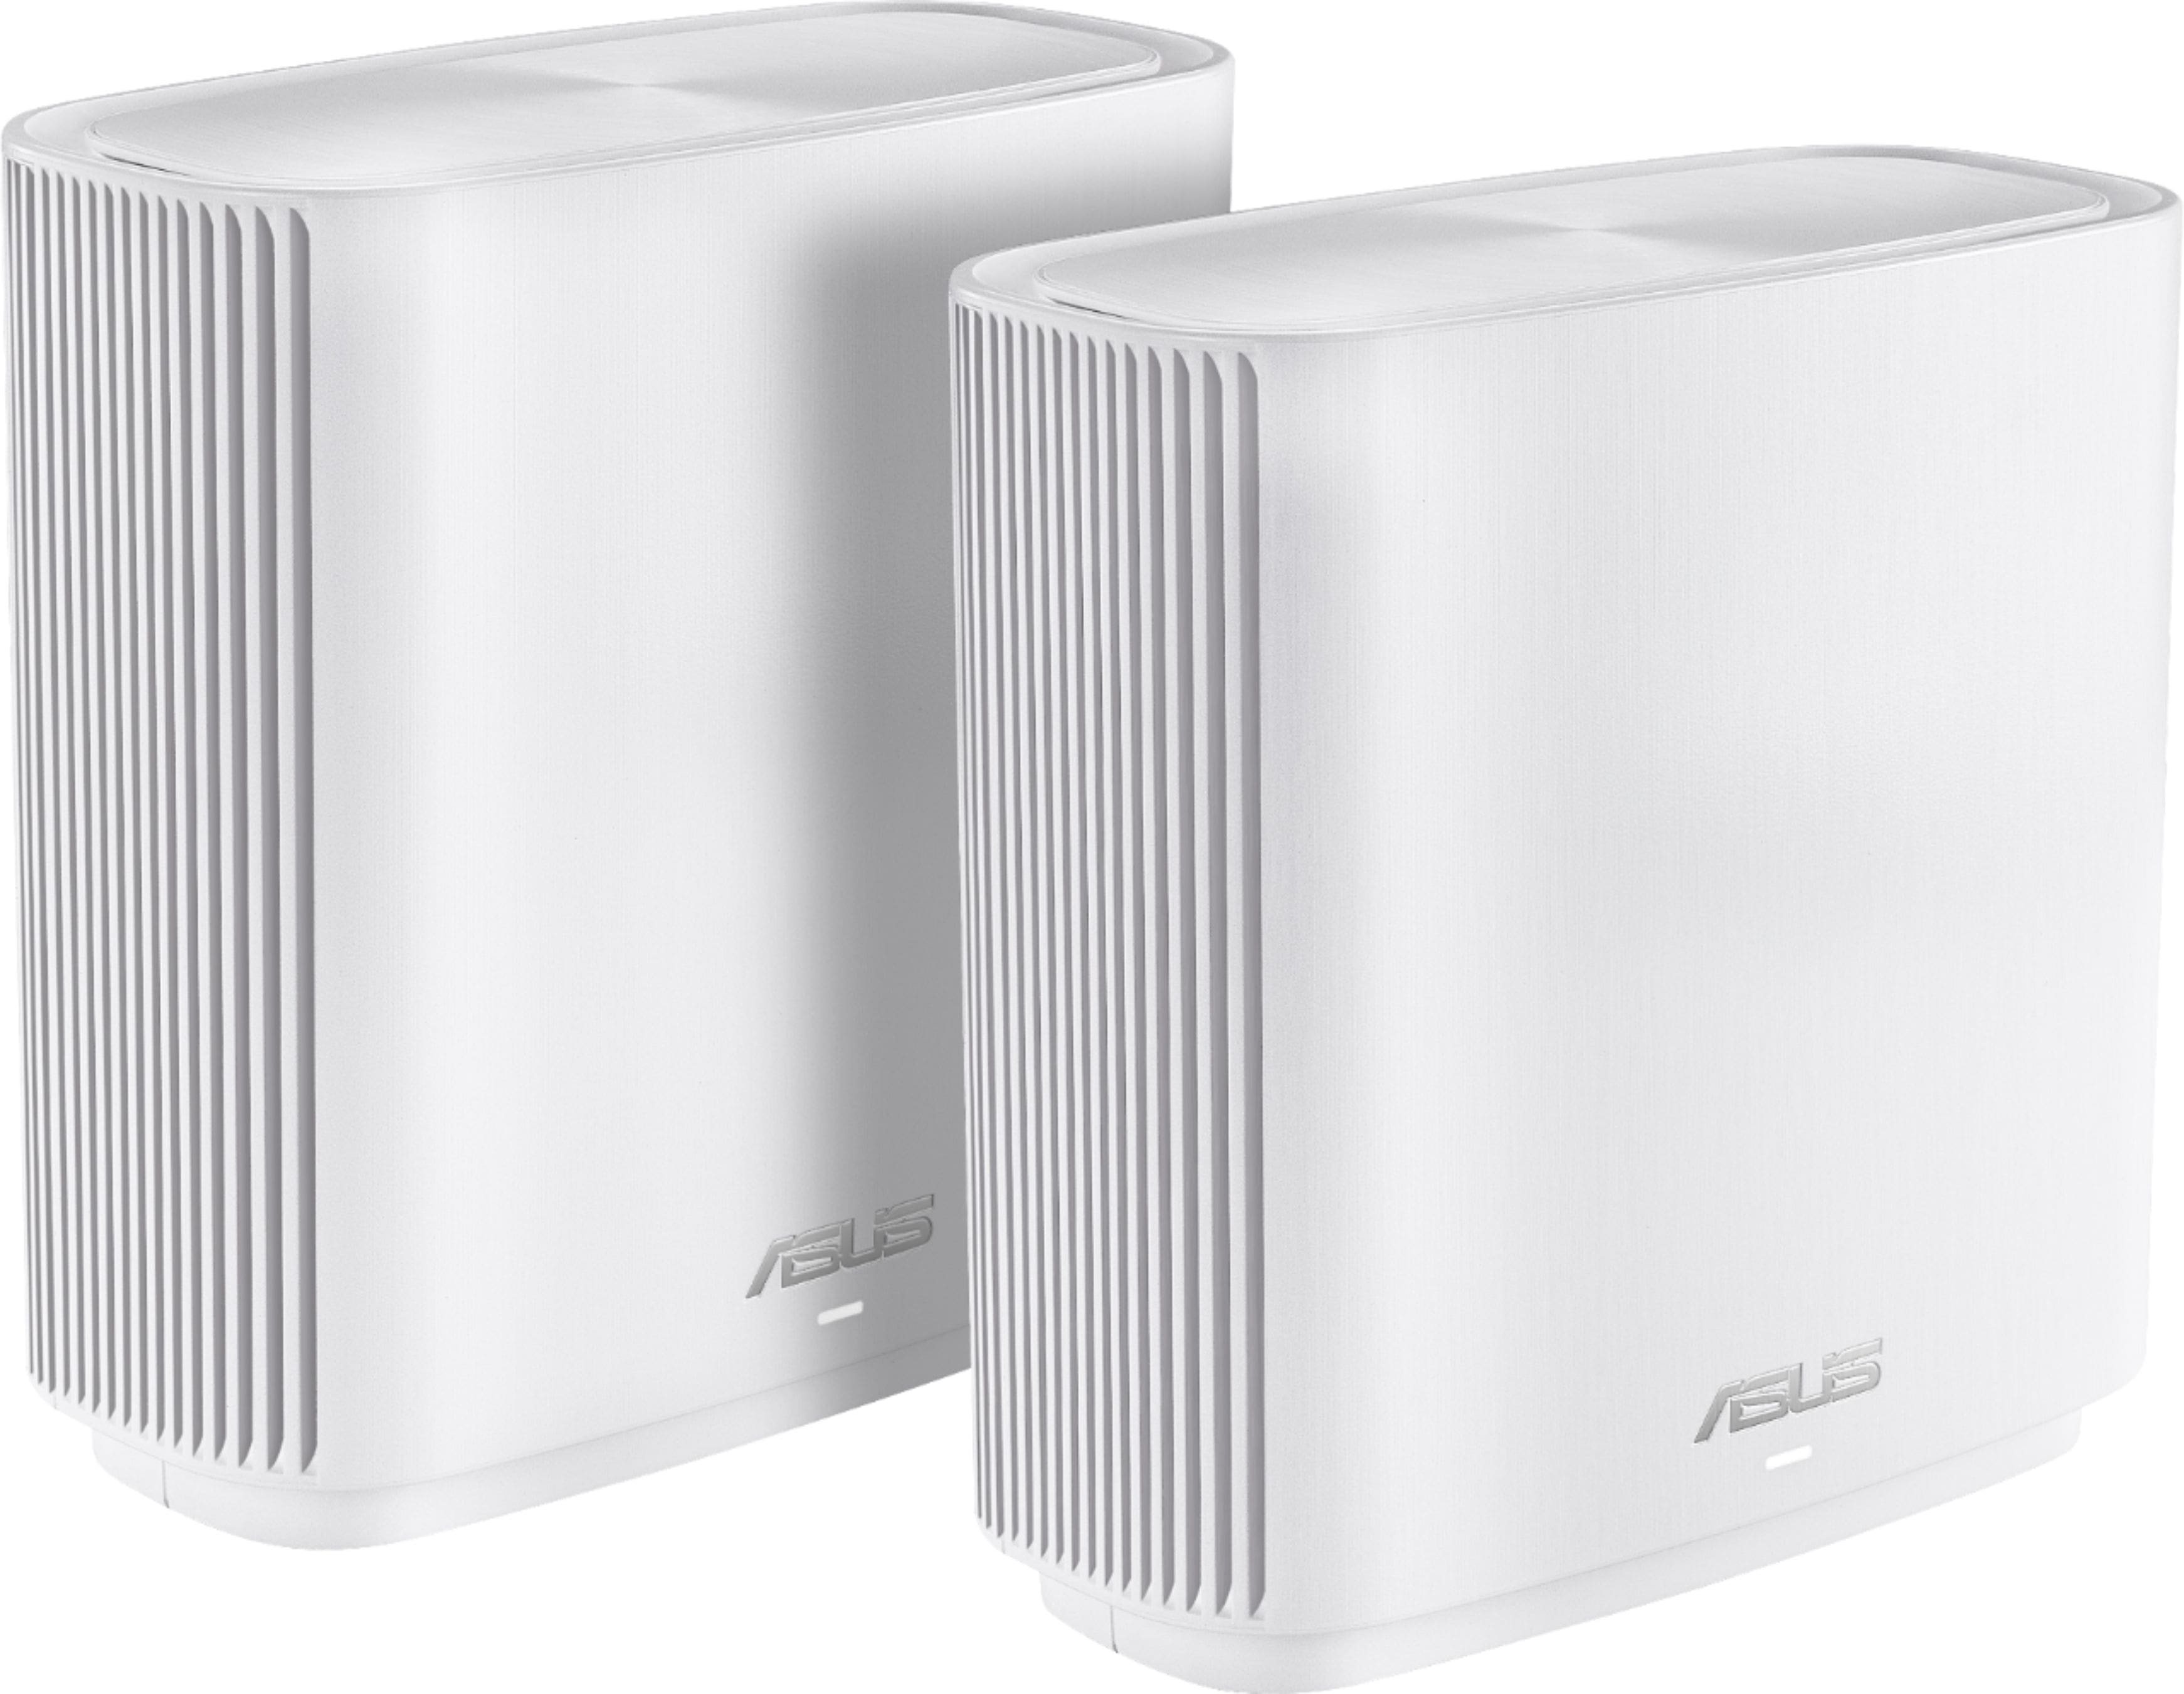 ASUS - ZenWiFi AC Tri-Band Mesh Wi-Fi Router (2-pack) - White - $254.99 after 15% Recycle Credit, Free Shipping